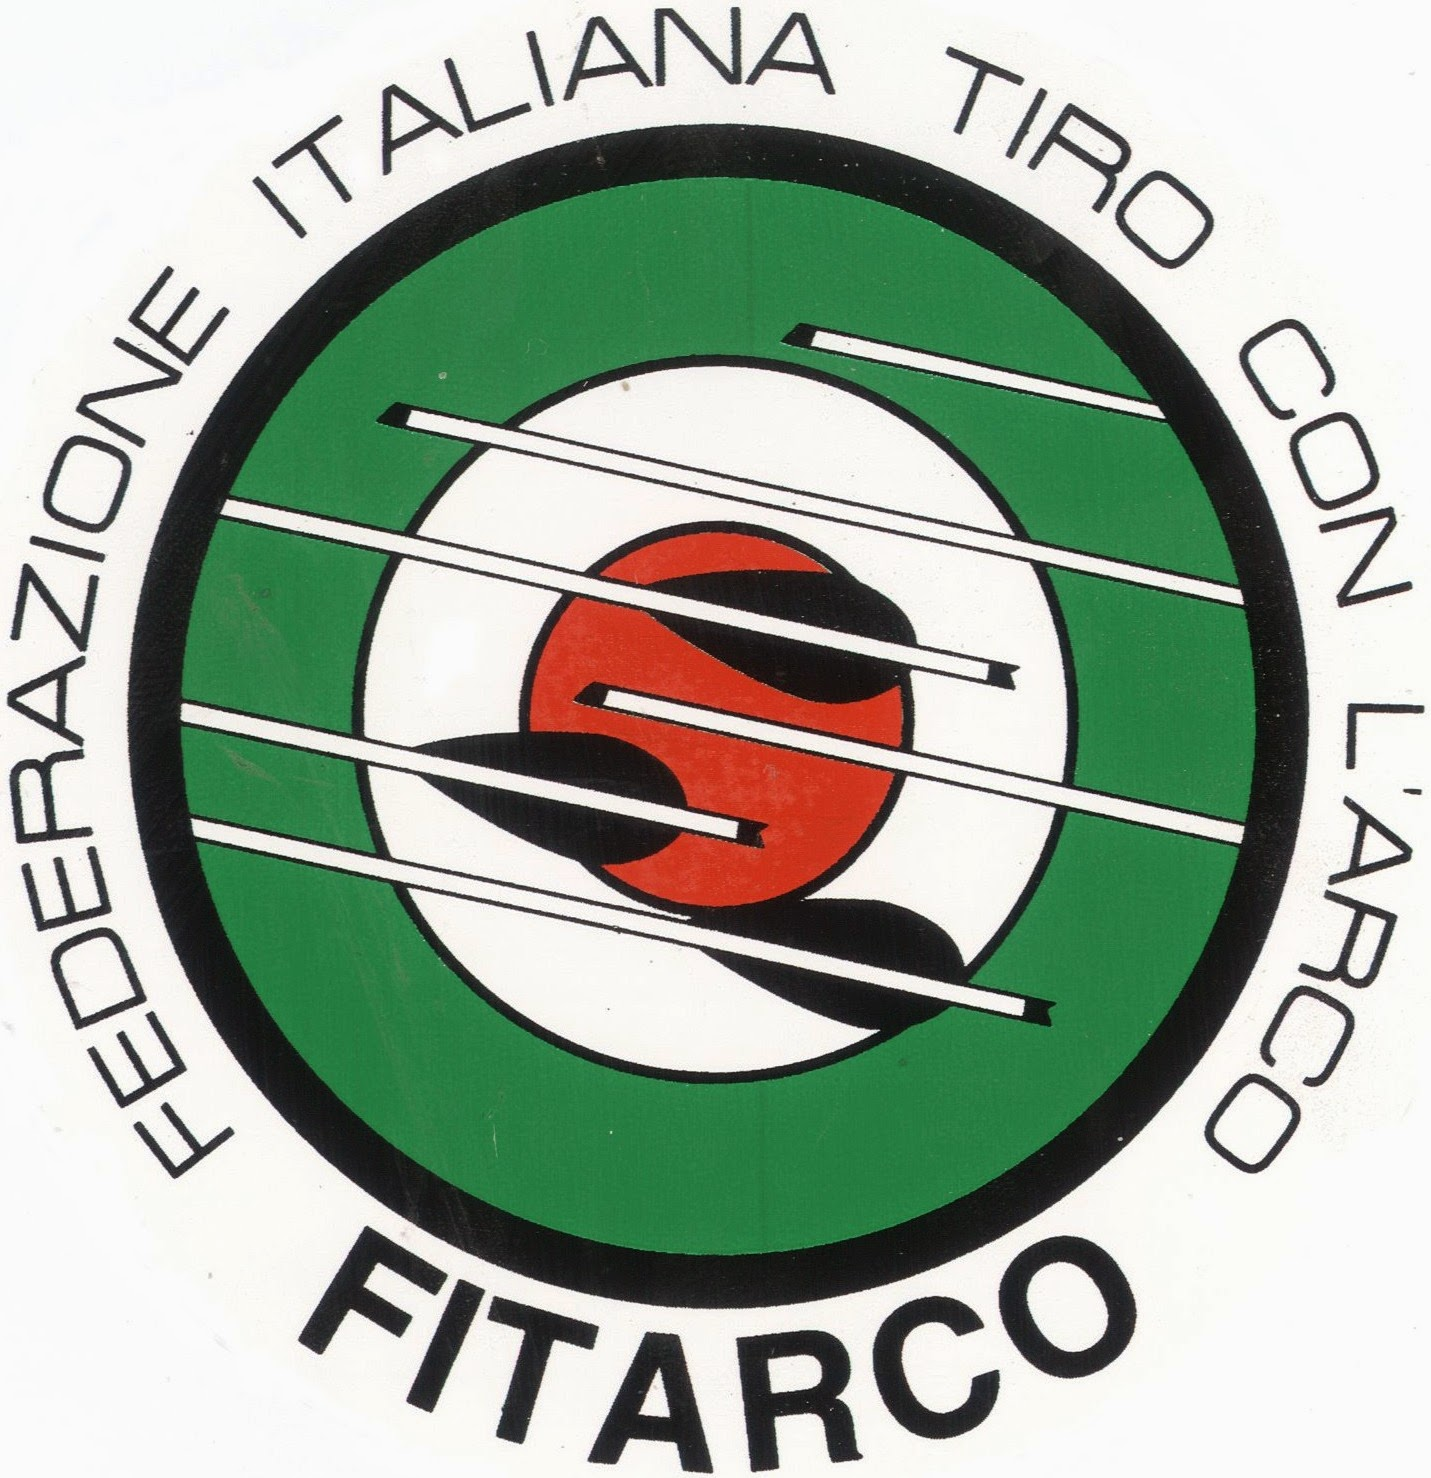 Fitarco